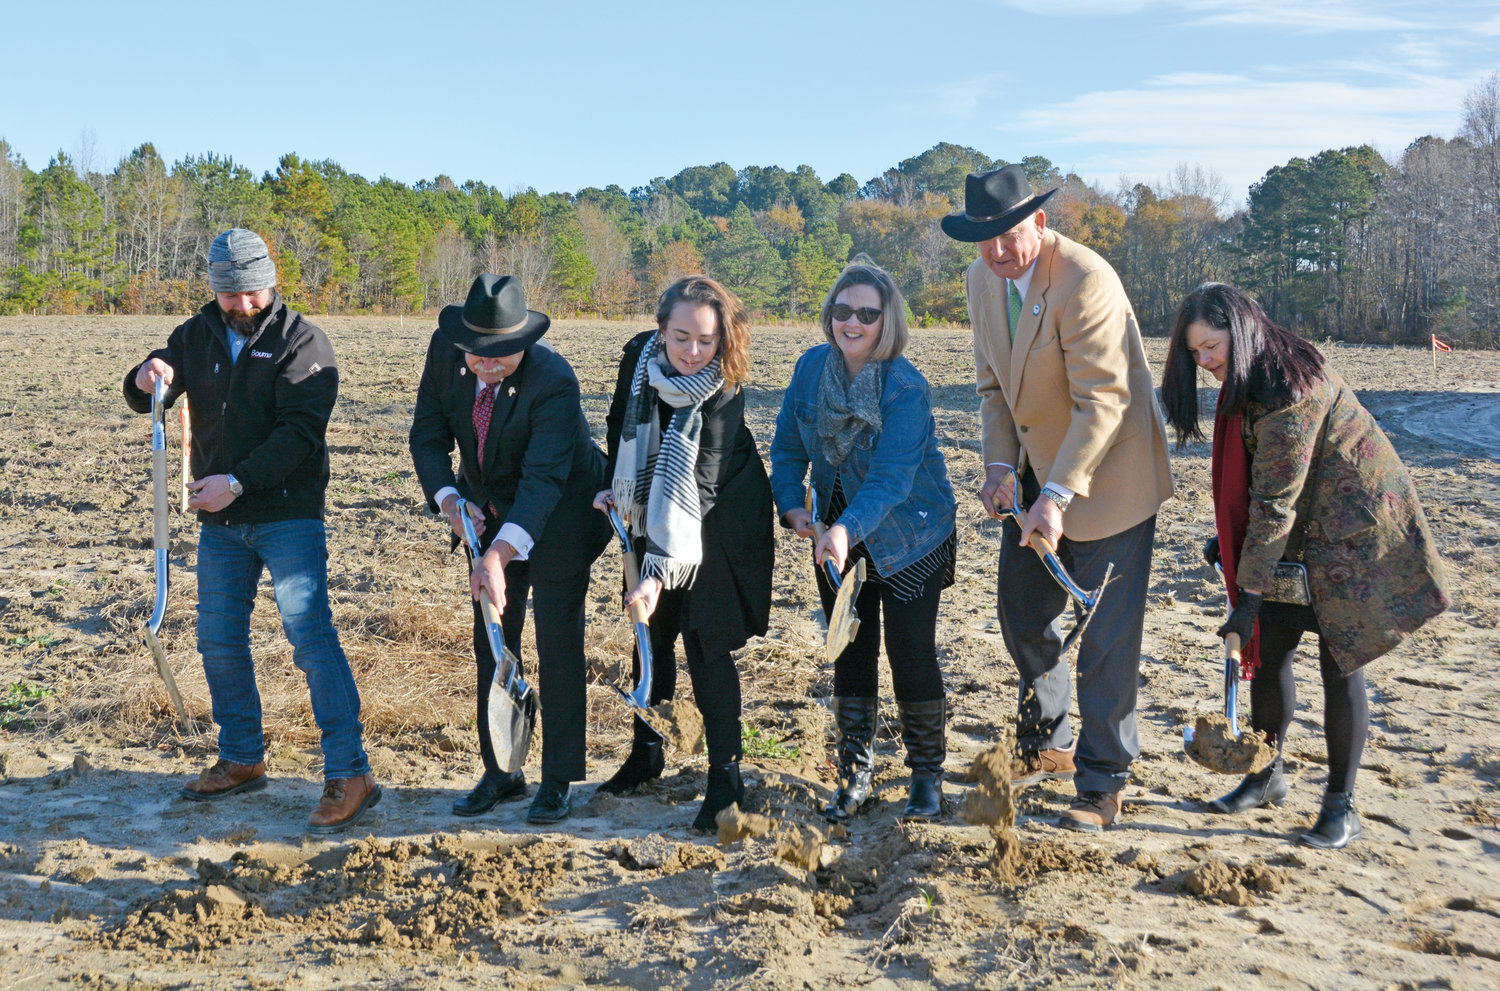 Officials from the Carolina Charter Academy joined town officials and broke ground on a new school near Angier Tuesday. Shown with shovels are Don Langlois, Stephanie Nall, Jaime Stoops, Julie Knudon, Angier Mayor Lew Weatherspoon and Fuquay-Varina Mayor John Byrne. The school is set to open in the fall of 2019.